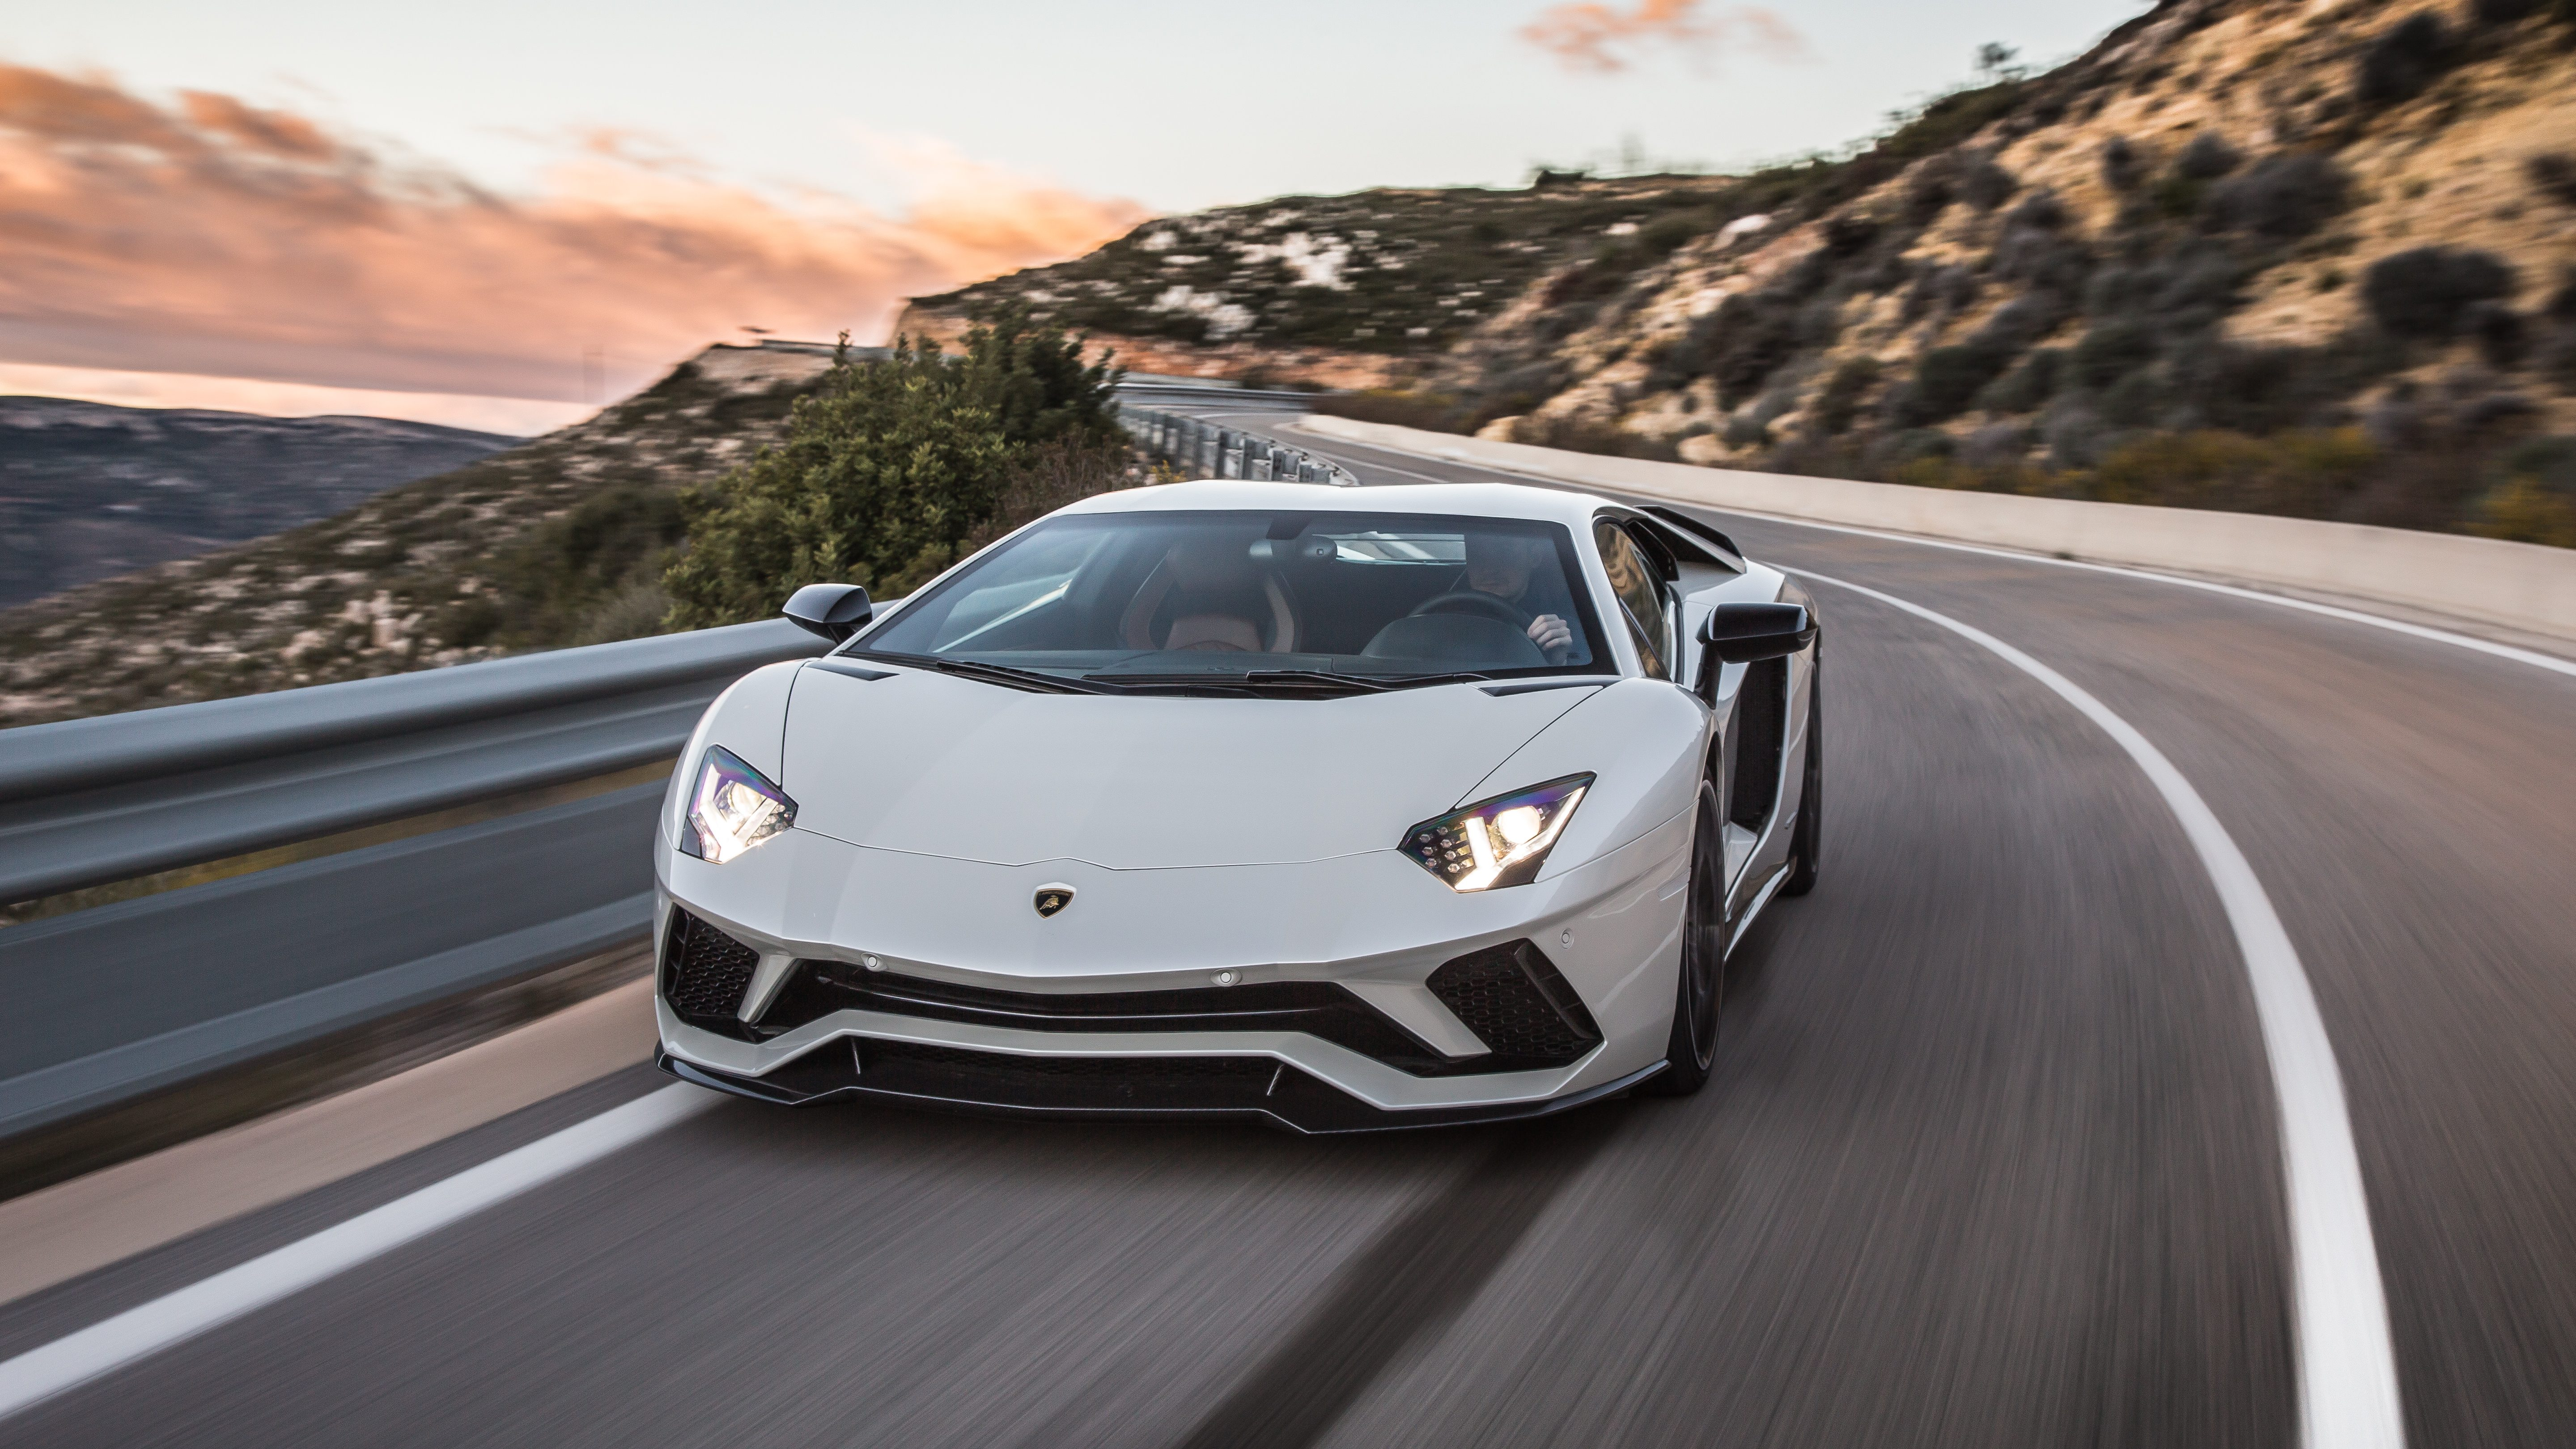 As Ethereum's price has soared, so have Lamborghini sales — Quartz